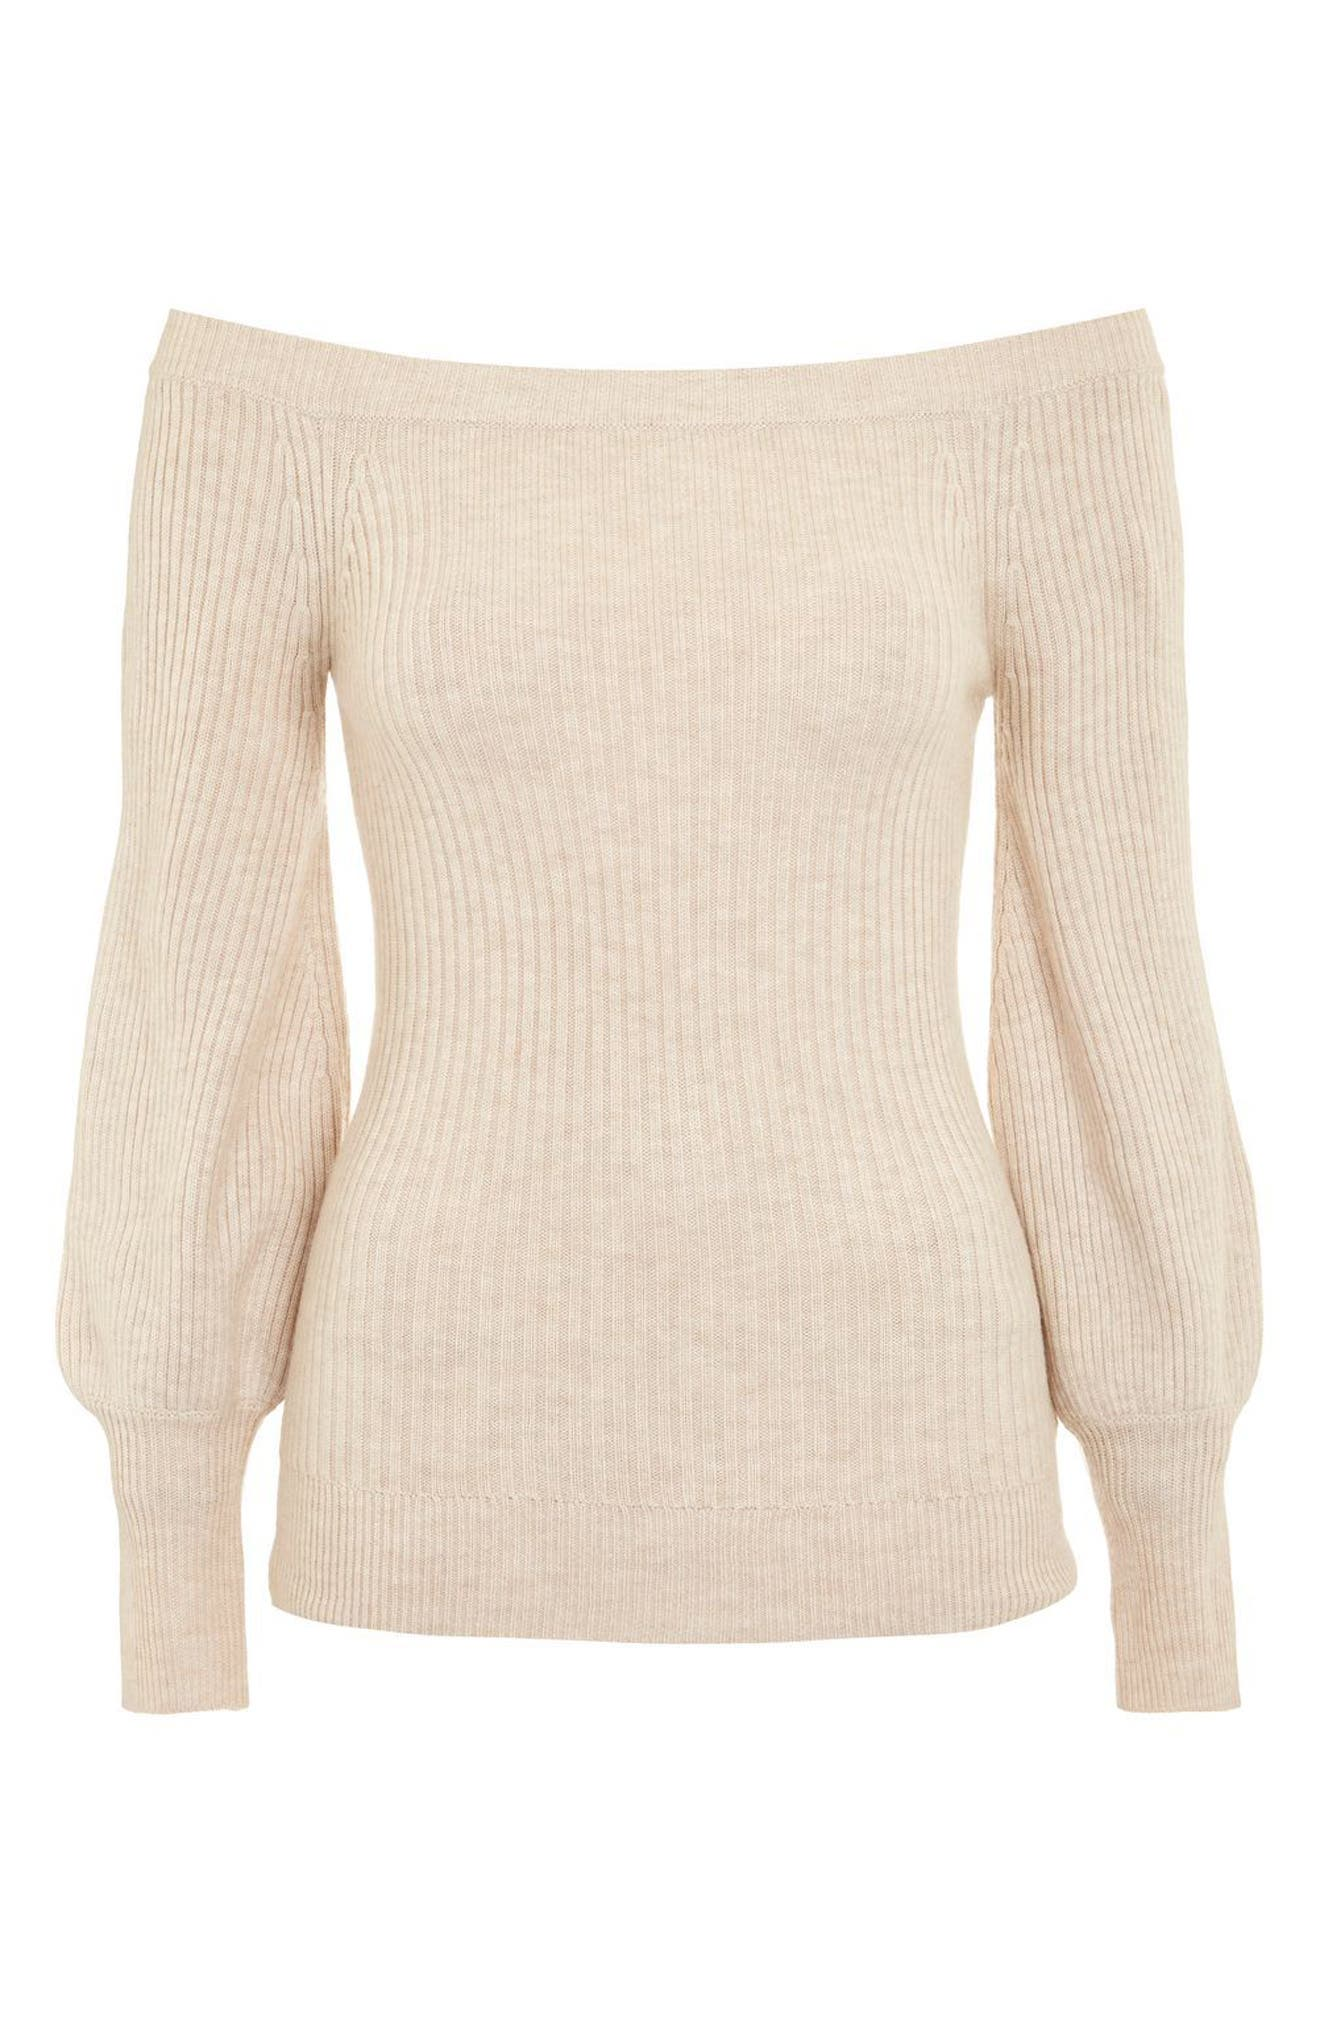 Off the Shoulder Sweater,                             Alternate thumbnail 3, color,                             251